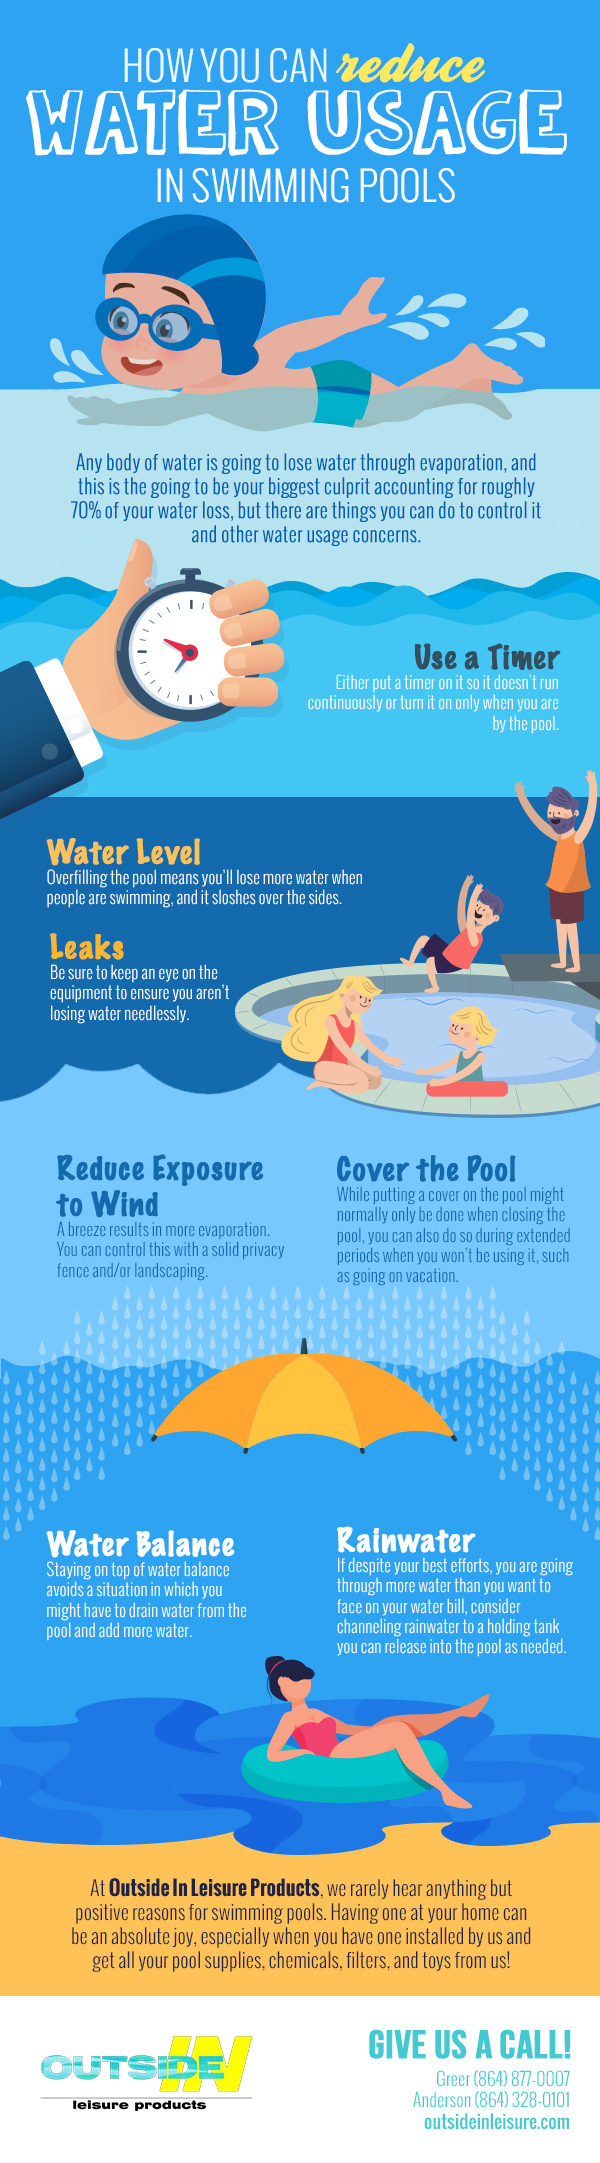 How you can reduce water usage in swimming pools